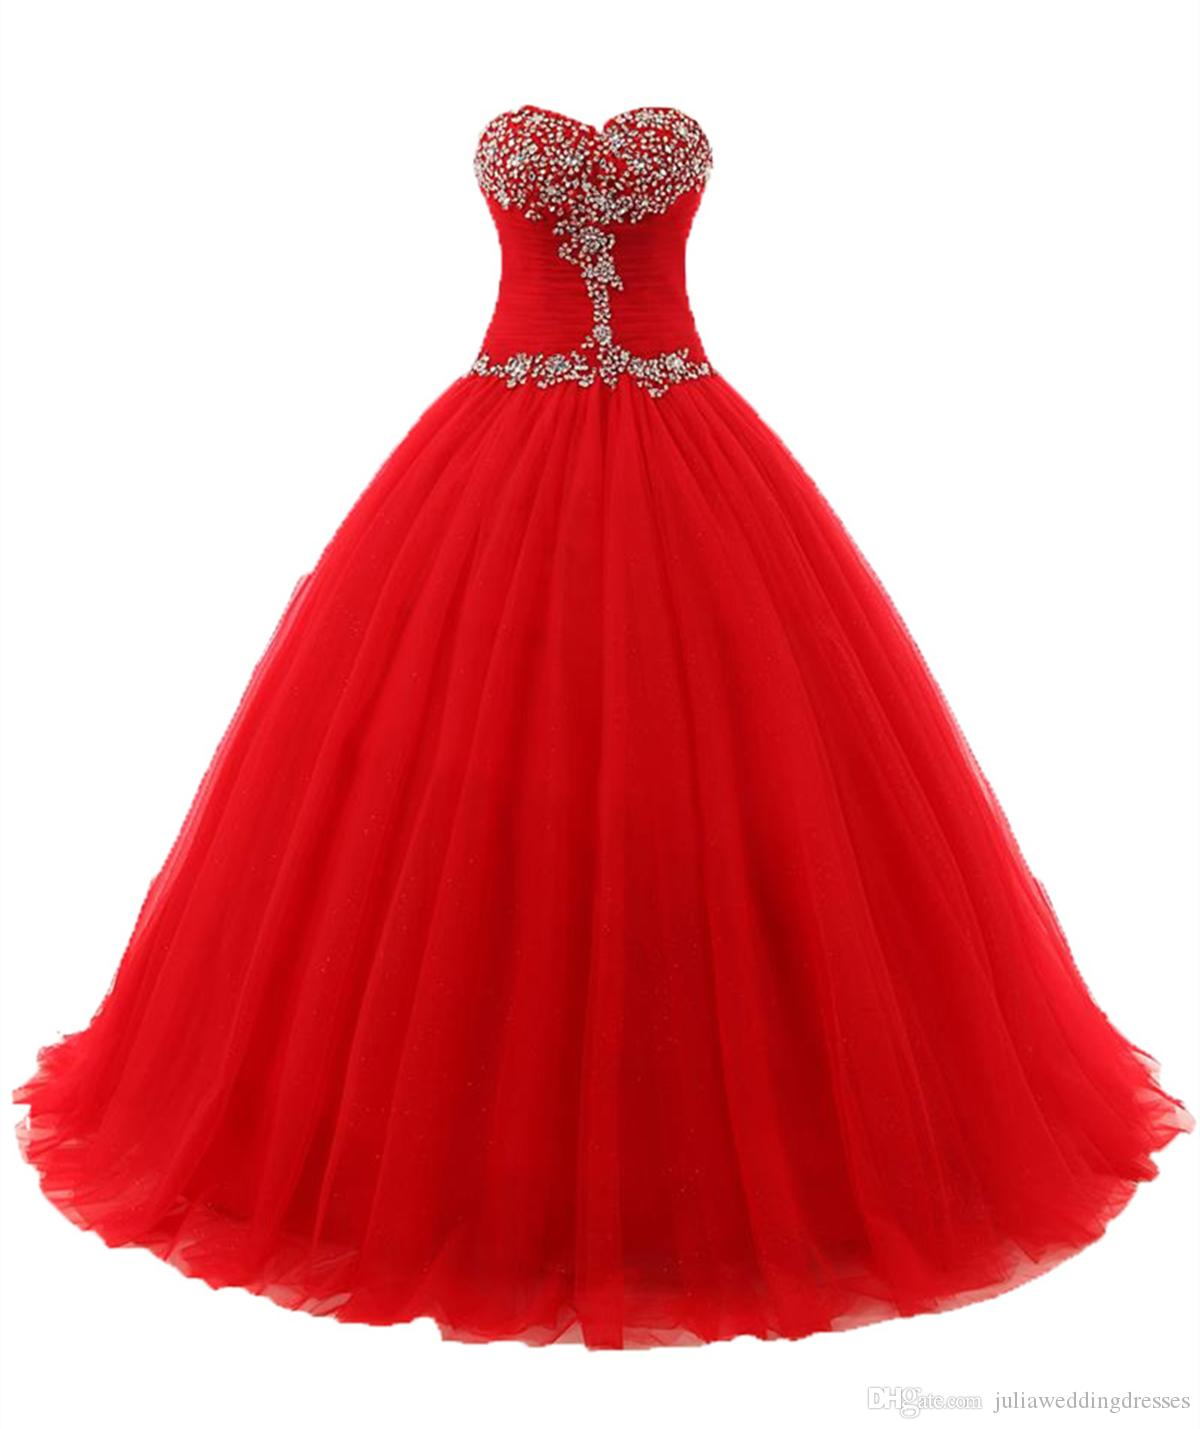 2018 Sexy Red Sweetheart Ball Gown Quinceanera Dresses with Beaded Sweet 16 Dress Lace Up Floor Length Detachable vestido para debutanQC115